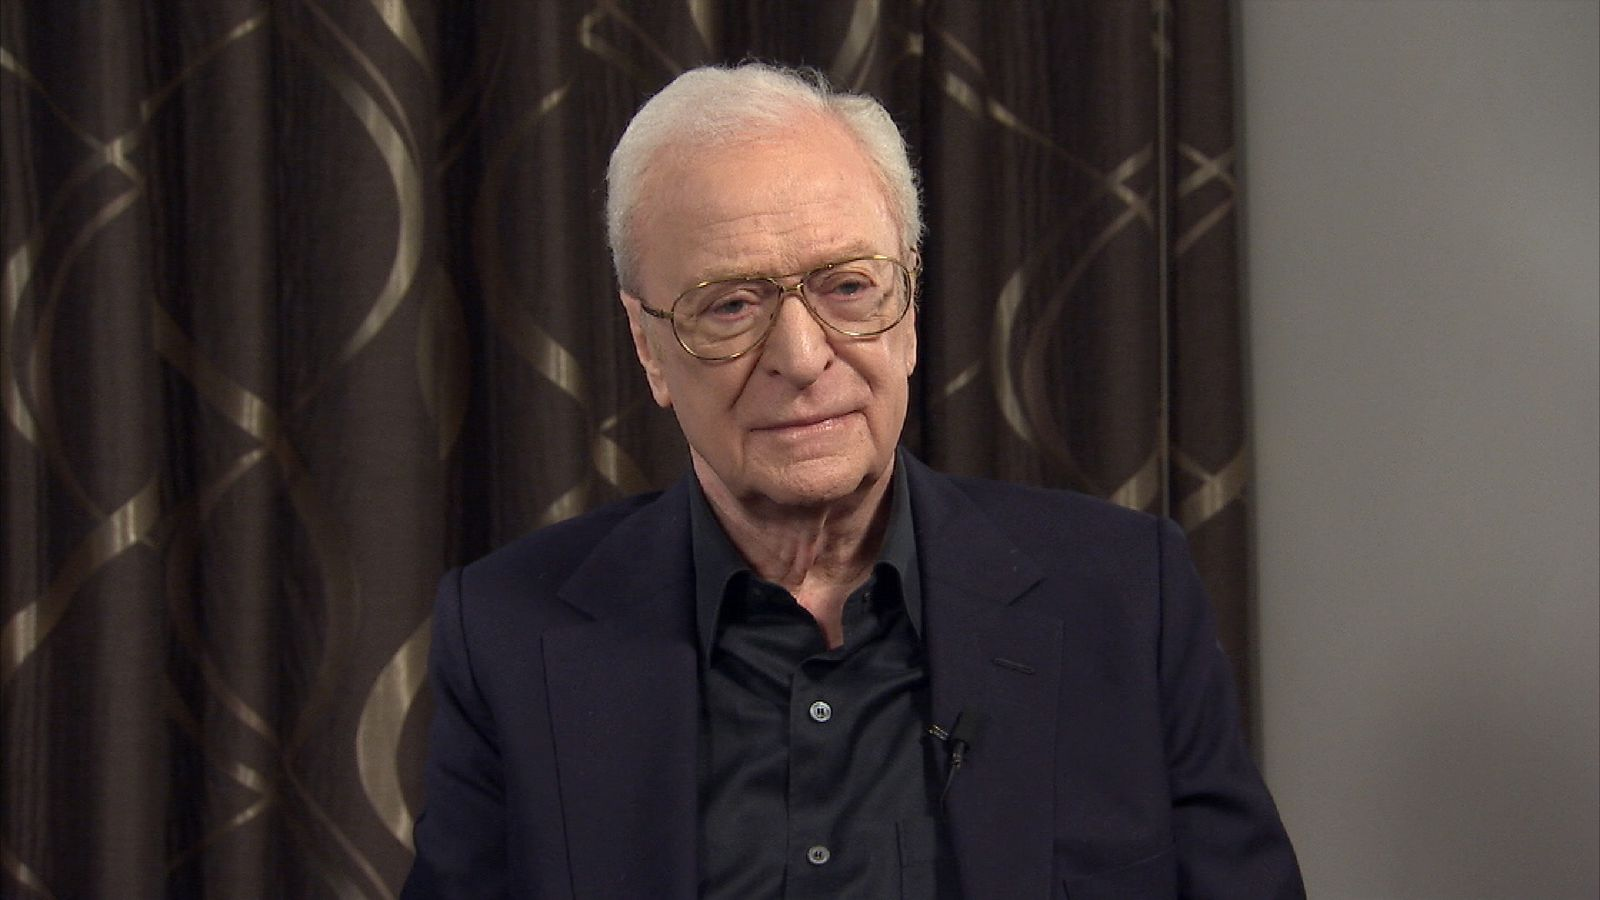 Sir Michael Caine speaks to Sky News about Brexit and his new film Going In Style